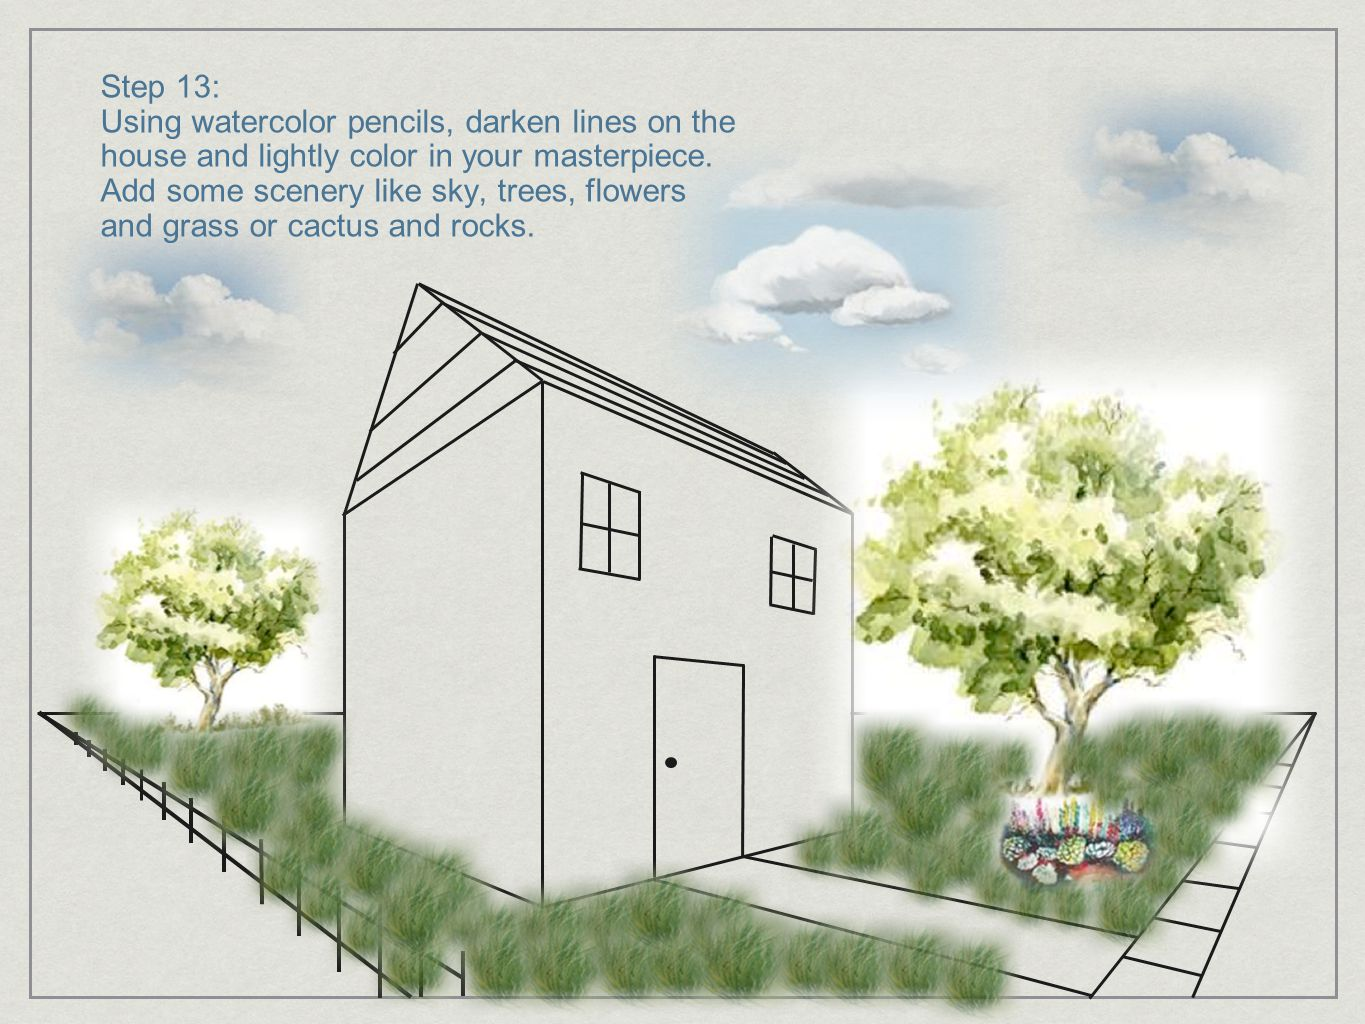 Step 13: Using watercolor pencils, darken lines on the house and lightly color in your masterpiece. Add some scenery like sky, trees, flowers and gras